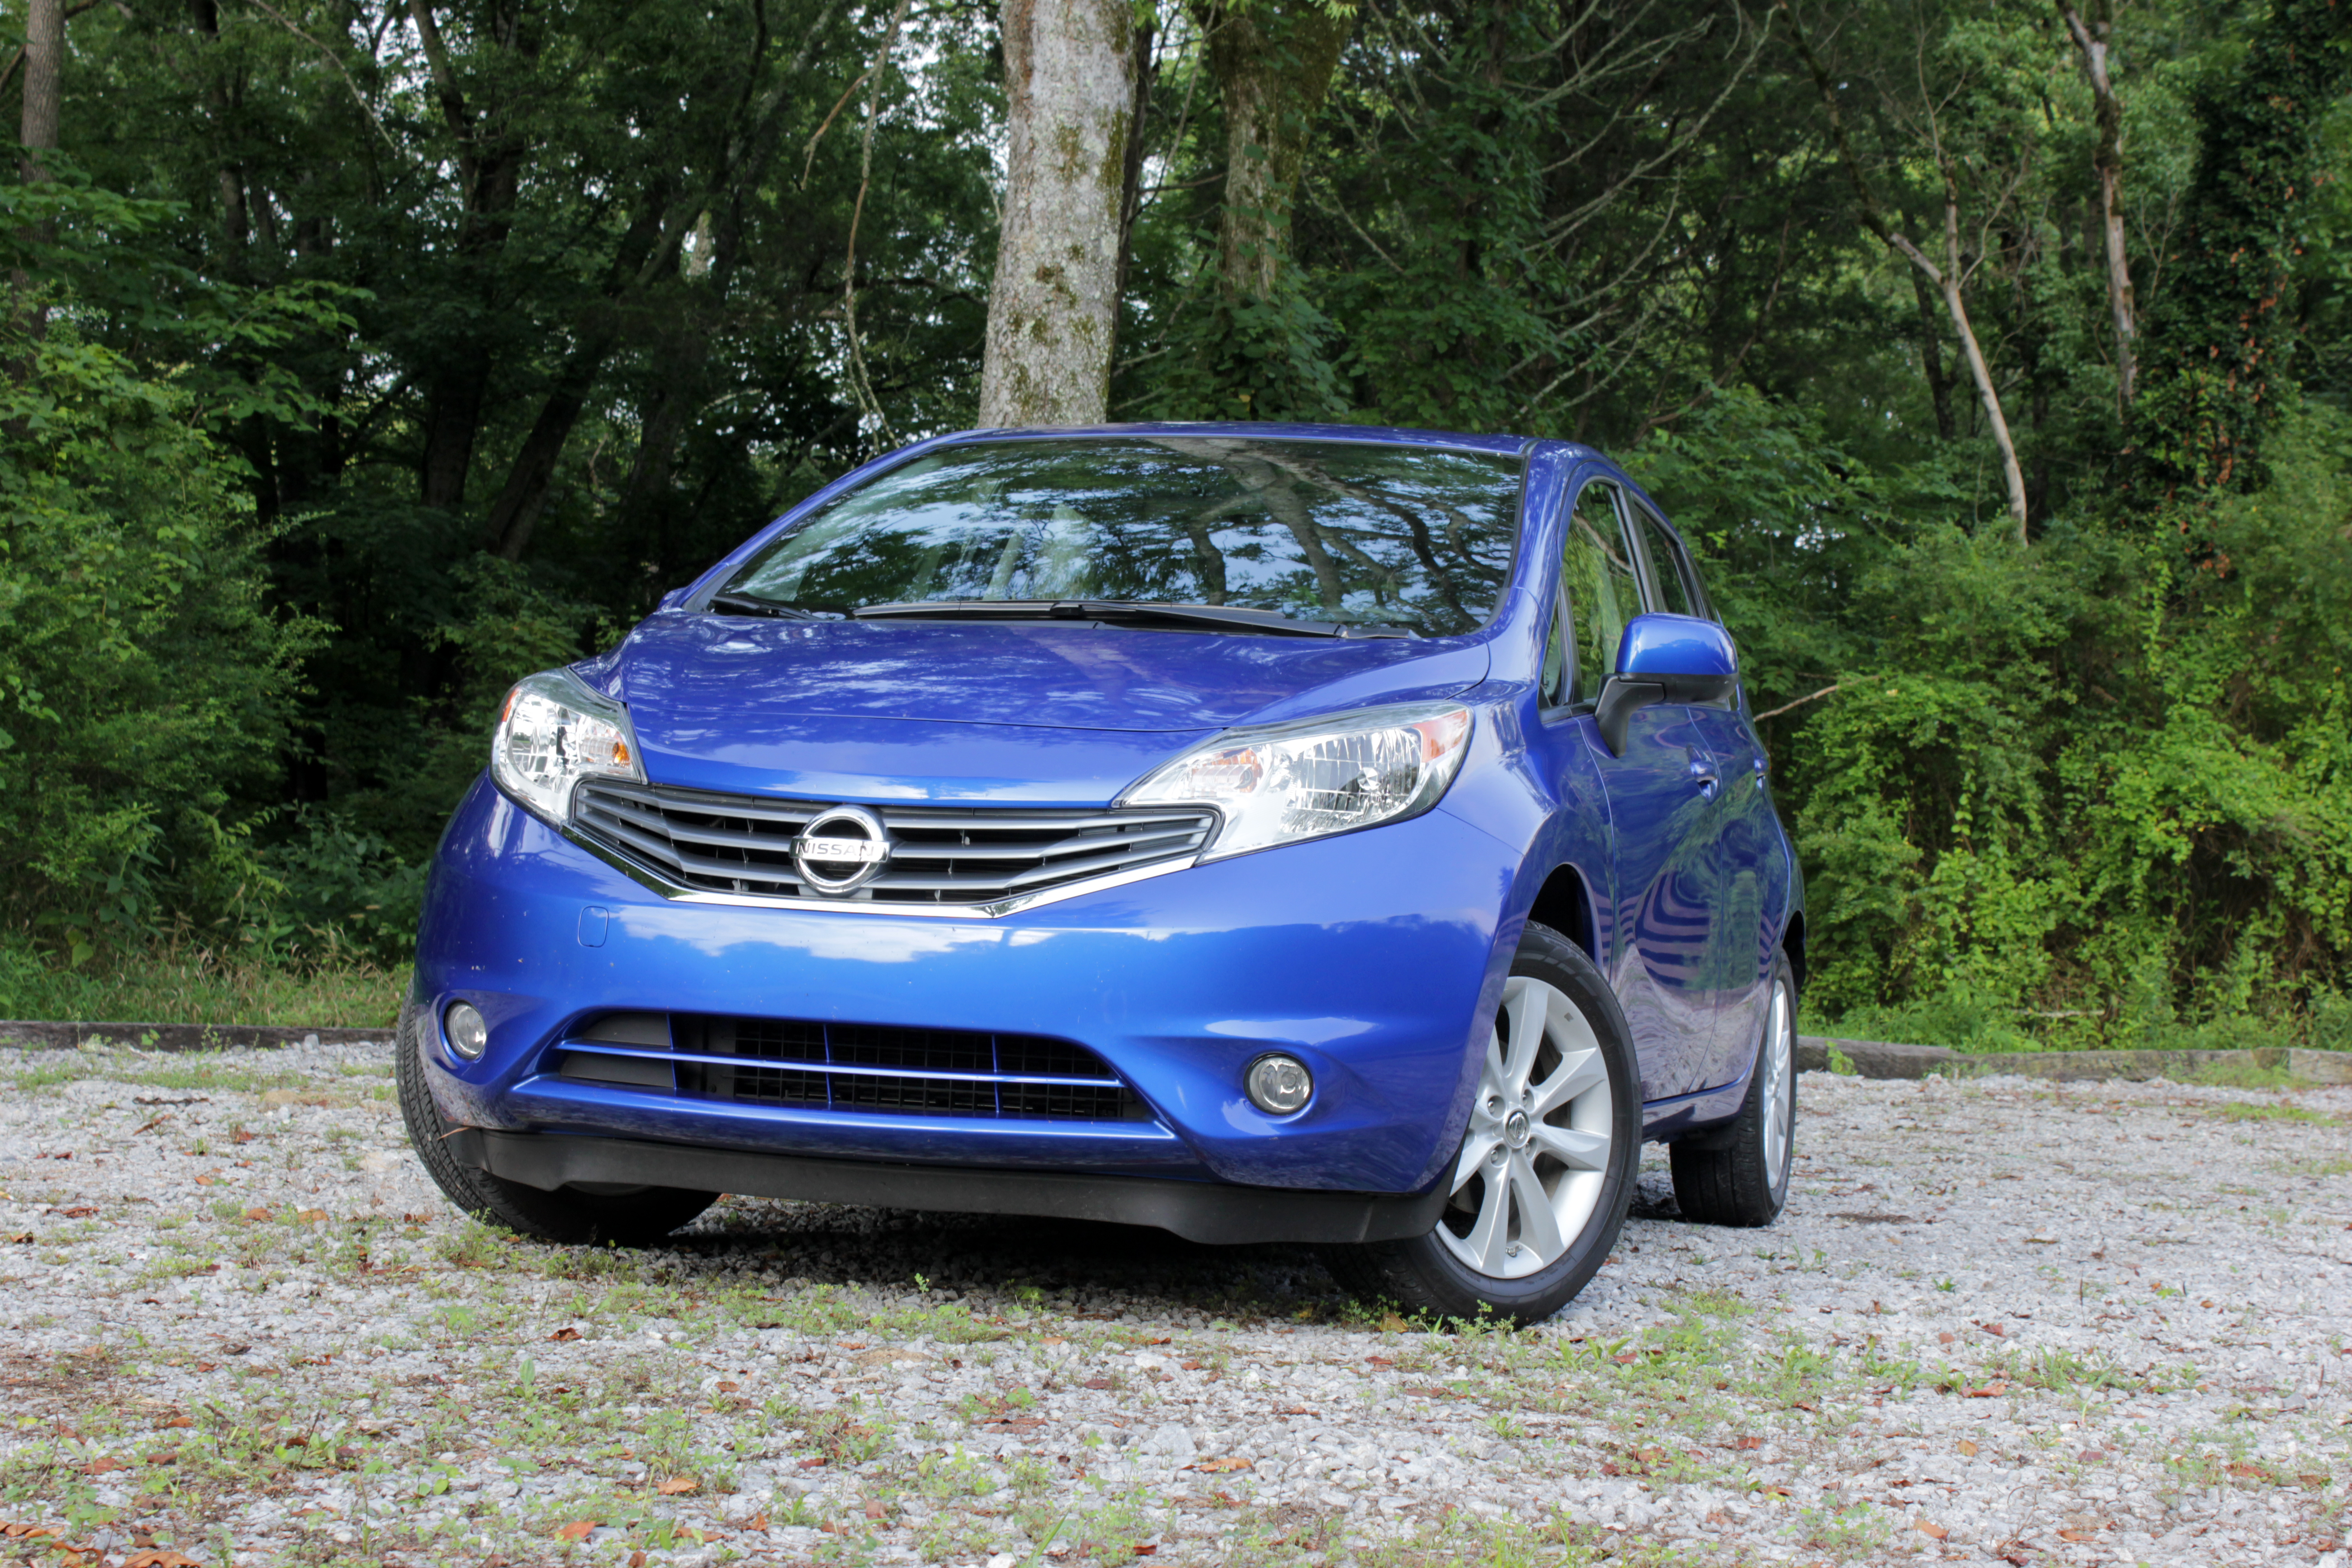 2014 Nissan Versa Note Review - Driven | Top Speed. »